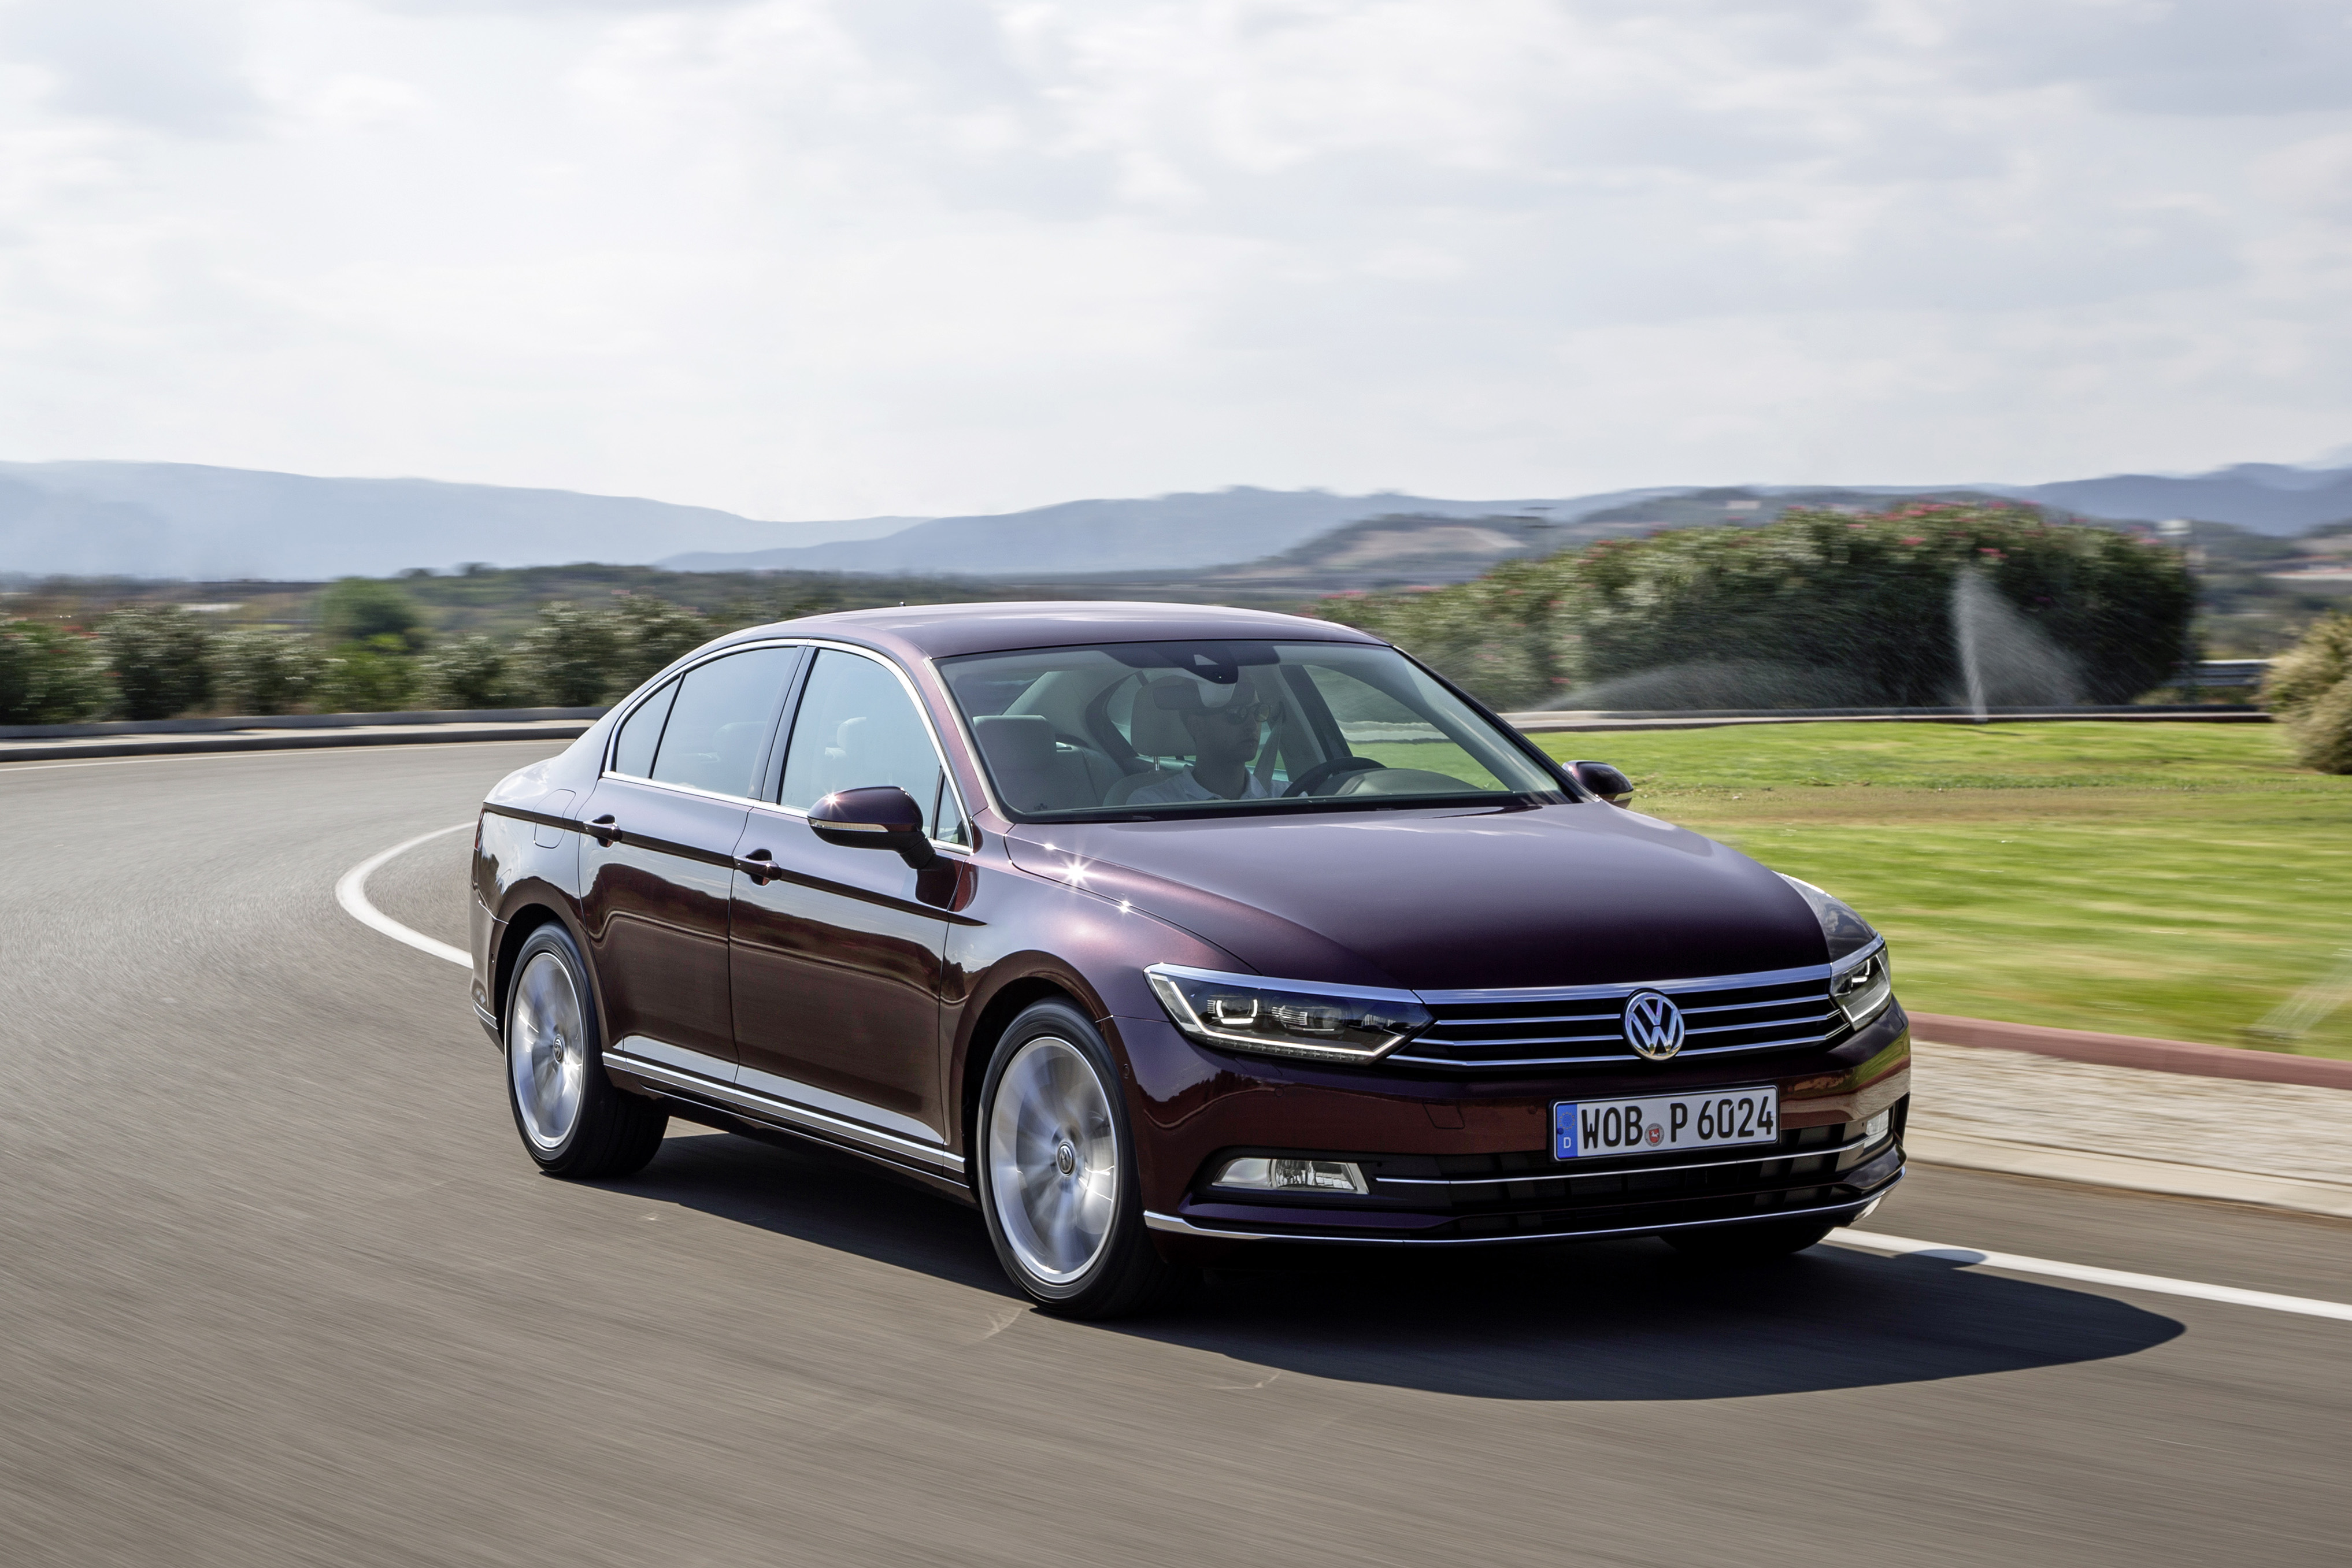 2015-volkswagen-passat-b8-in-crimson-red-metallic-looks-stunning_7